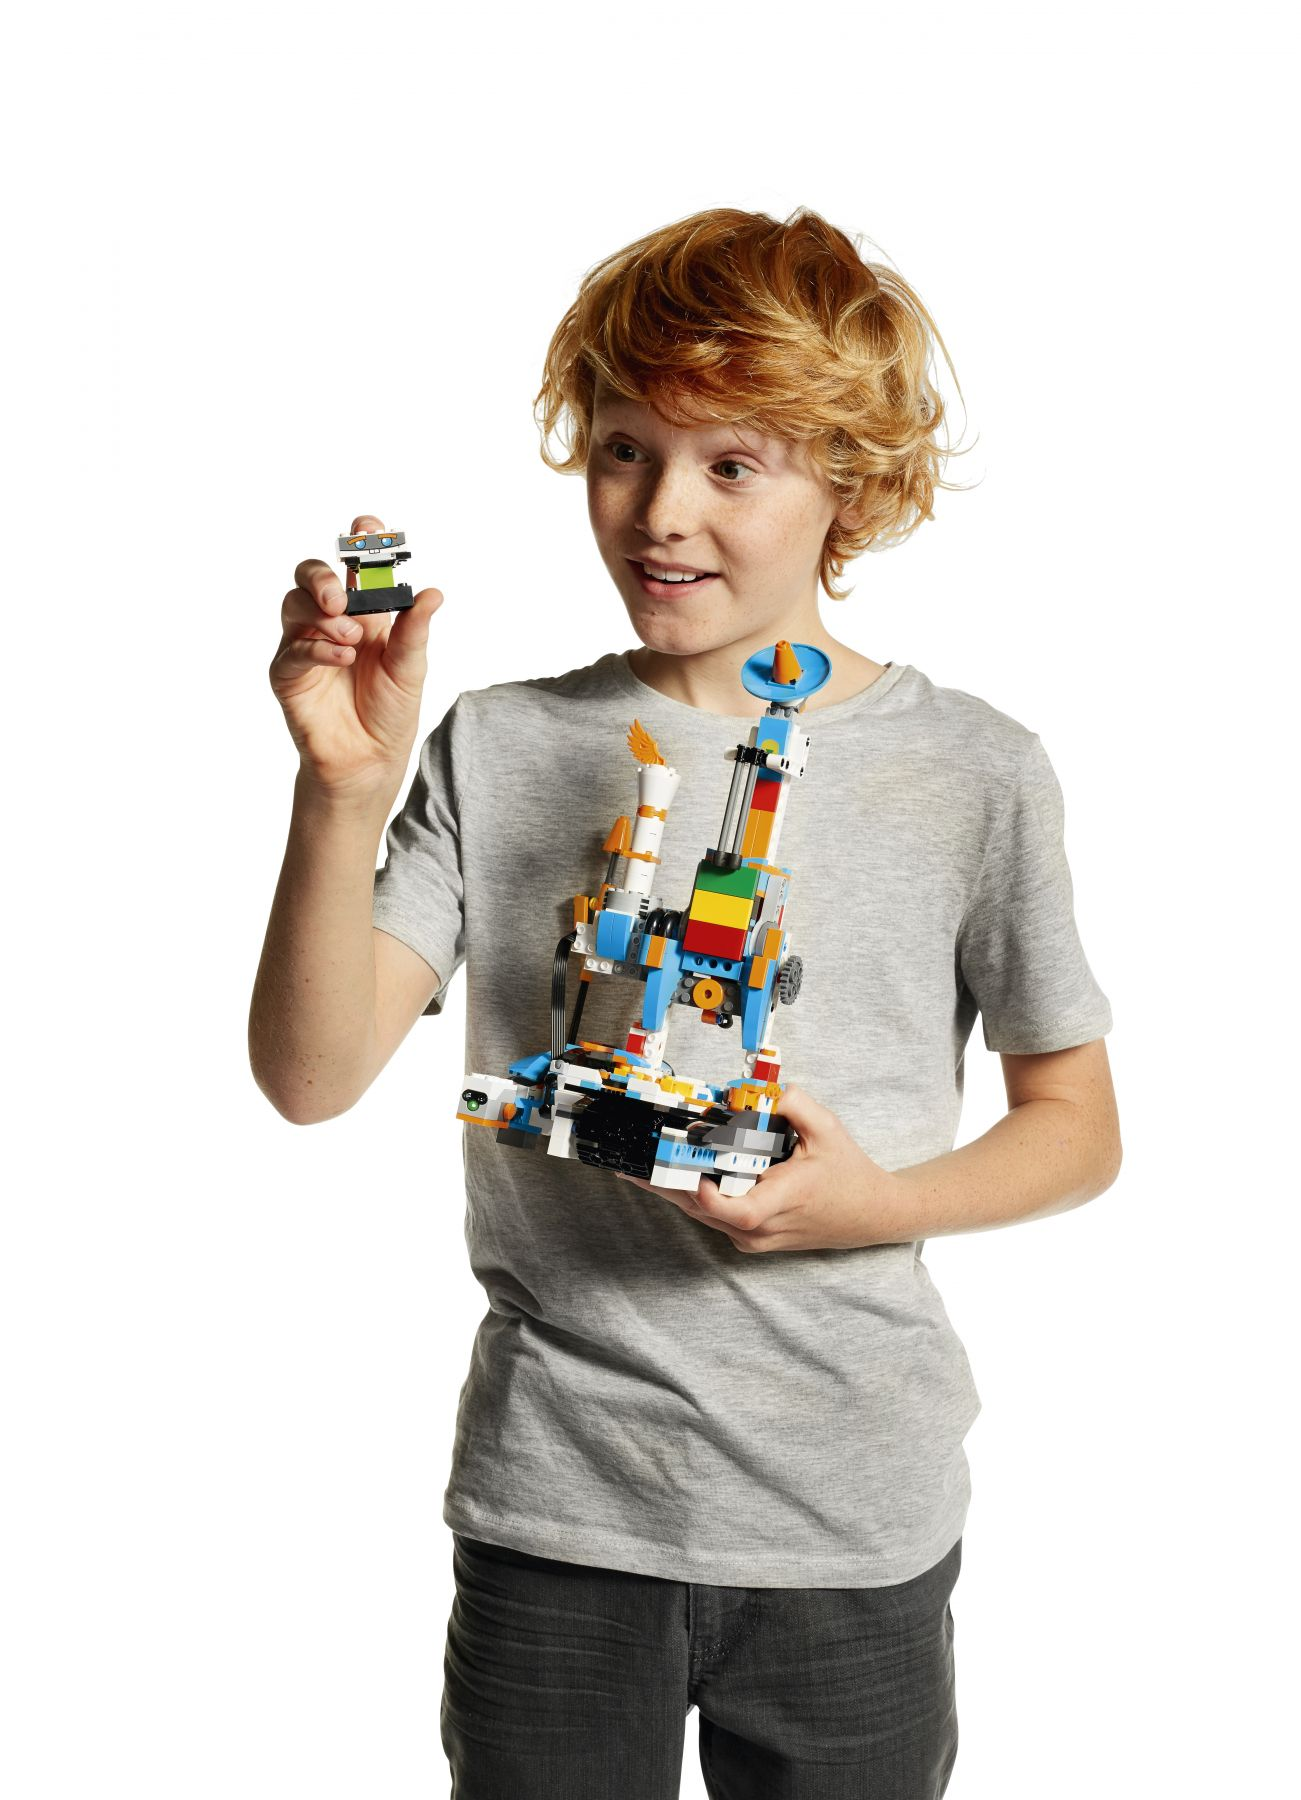 LEGO BOOST 17101 Creative Toolbox LEGO_BOOST_WHITE_03_V148.jpg